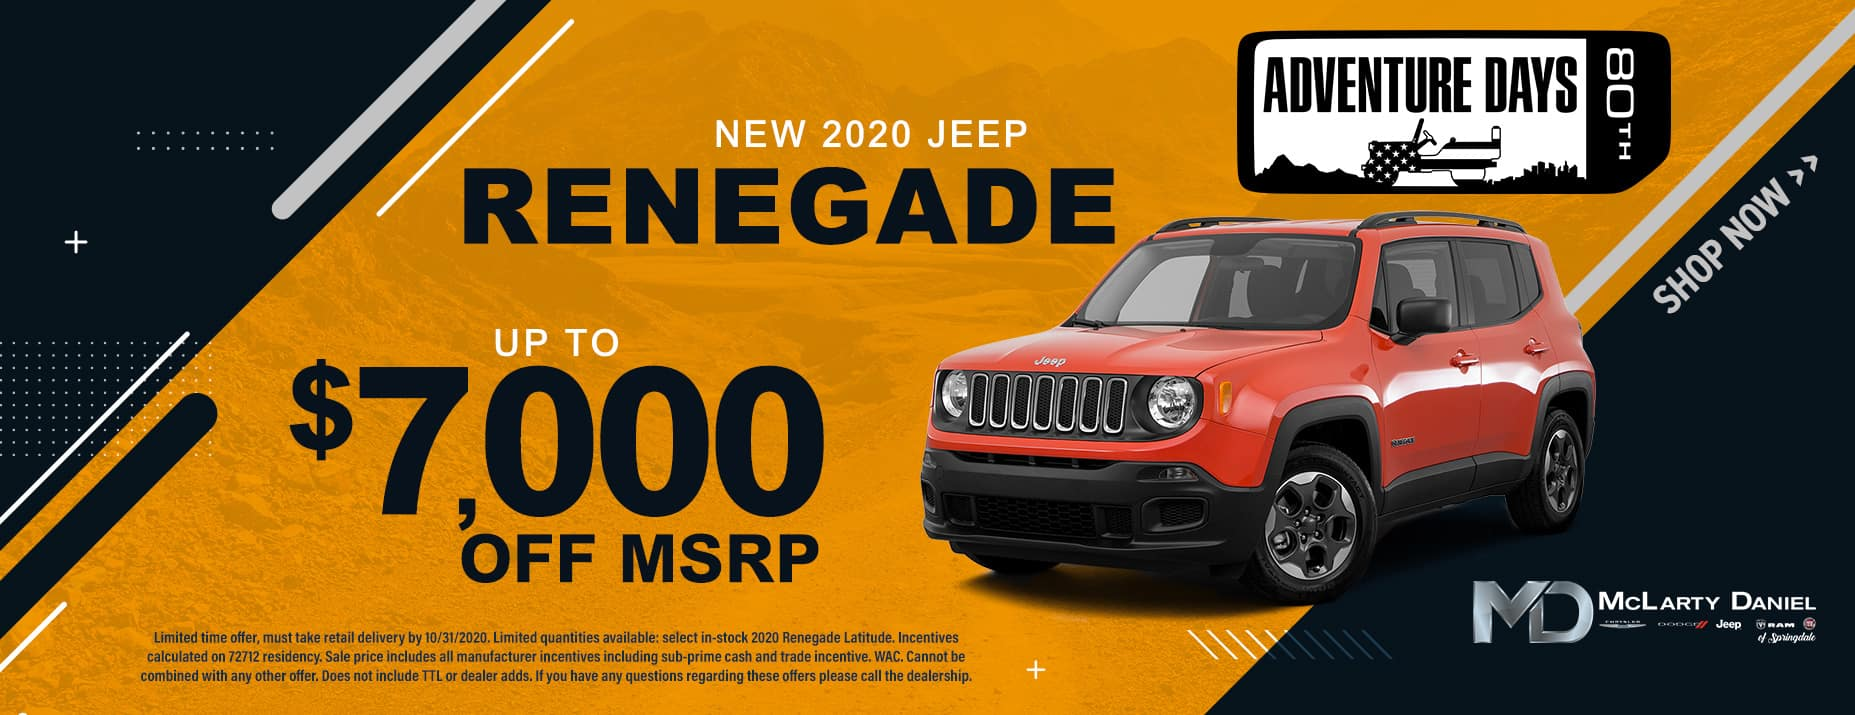 2020 JEEP RENEGADE - UP TO $7,000 OFF!